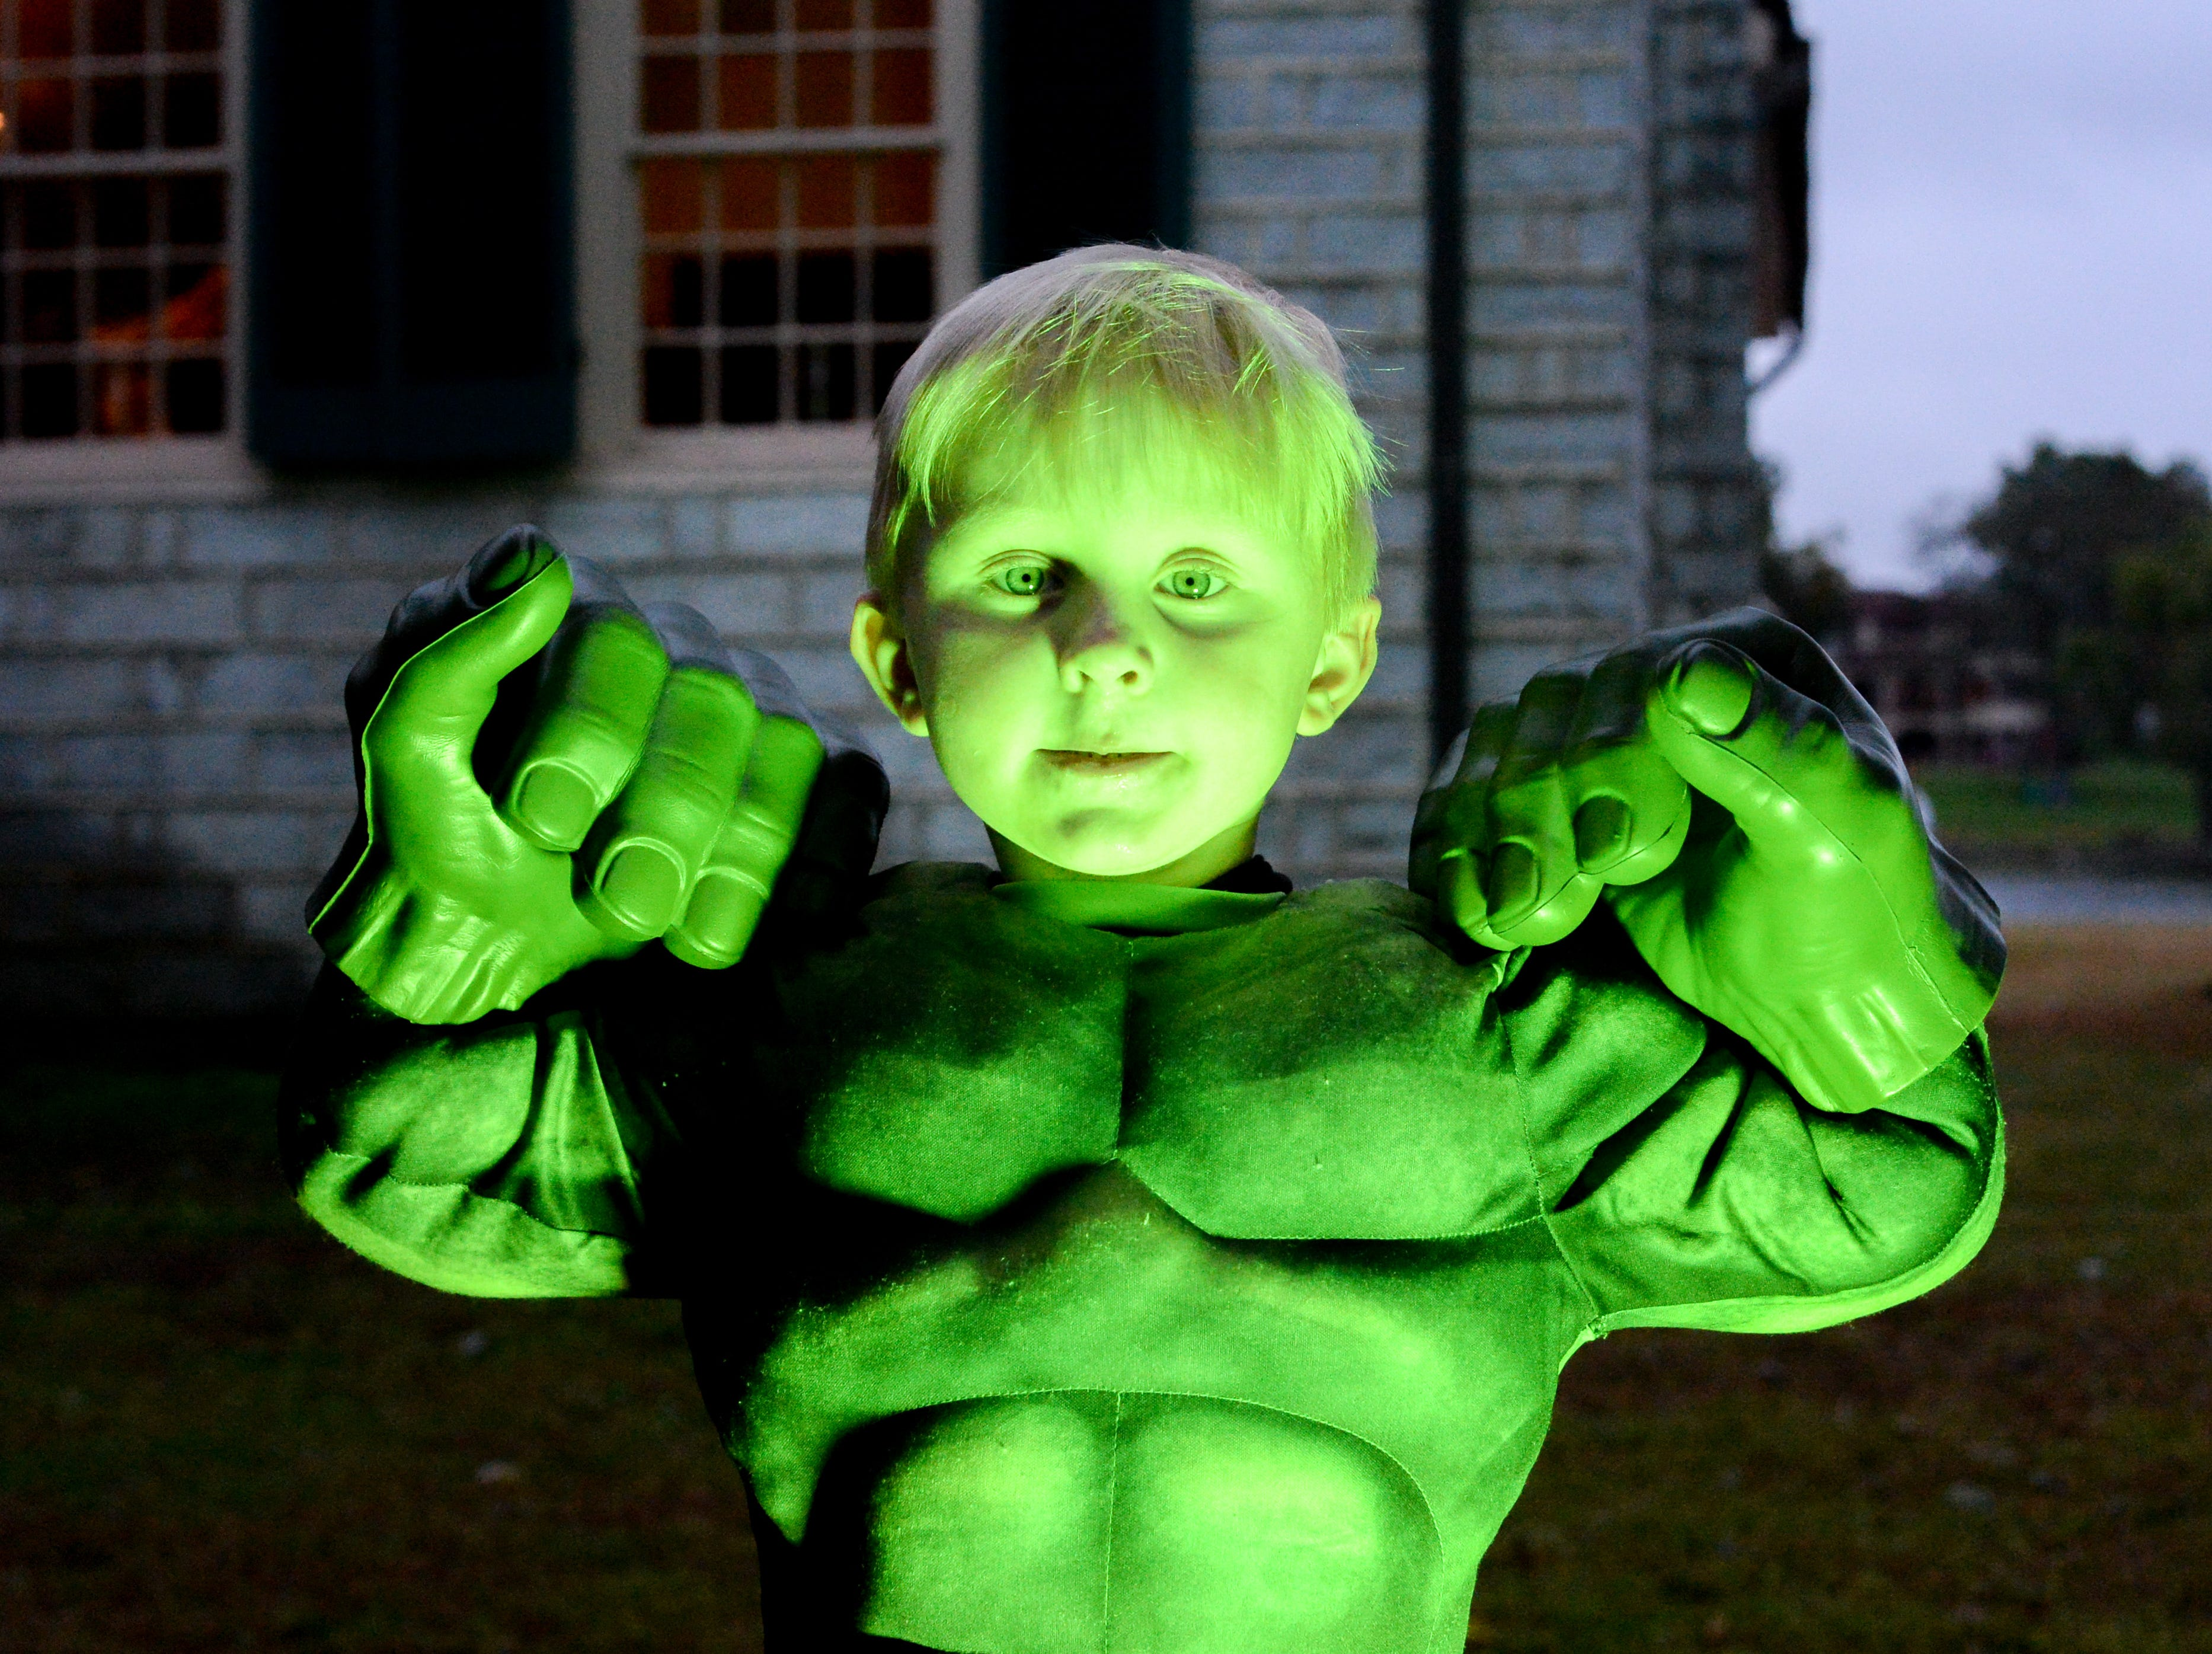 Owen Tisdale turns green during the Castle of Villains trick or treating event at Historic Rock Castle in Hendersonville on Friday, Oct. 26.